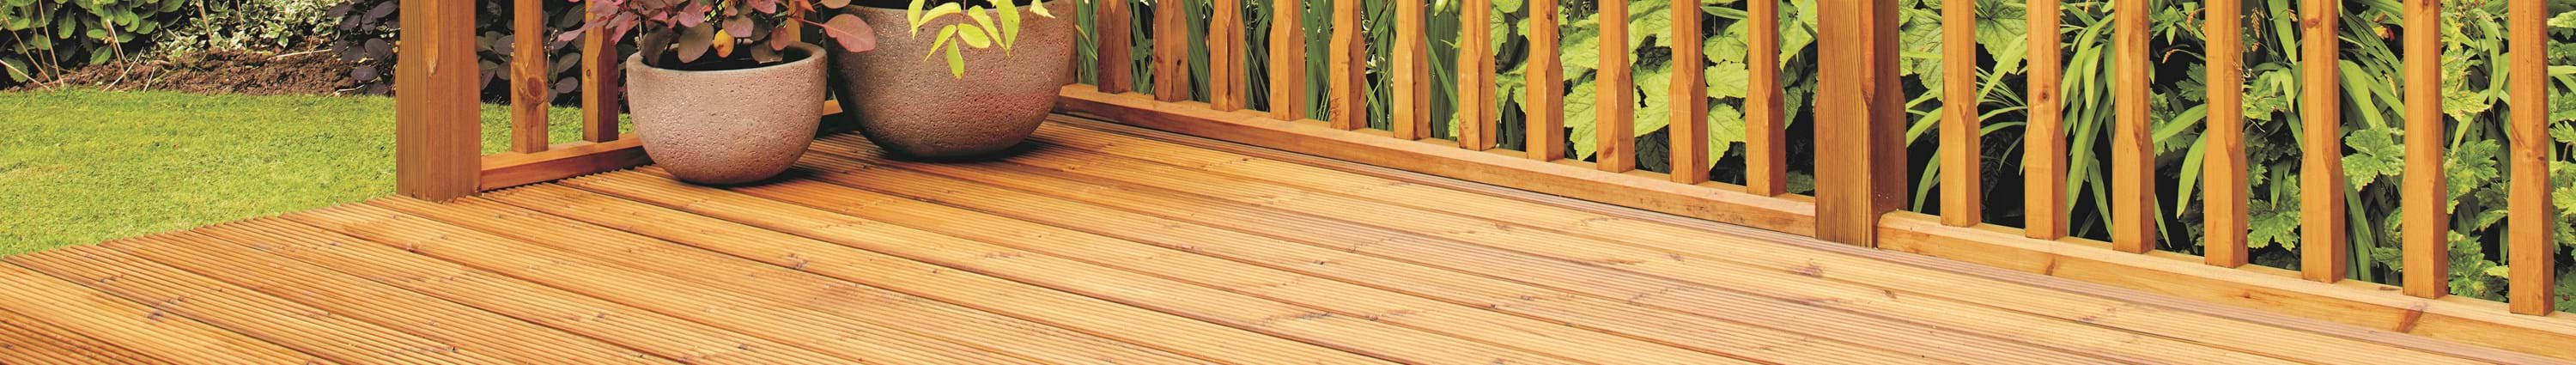 decking stain category.jpg